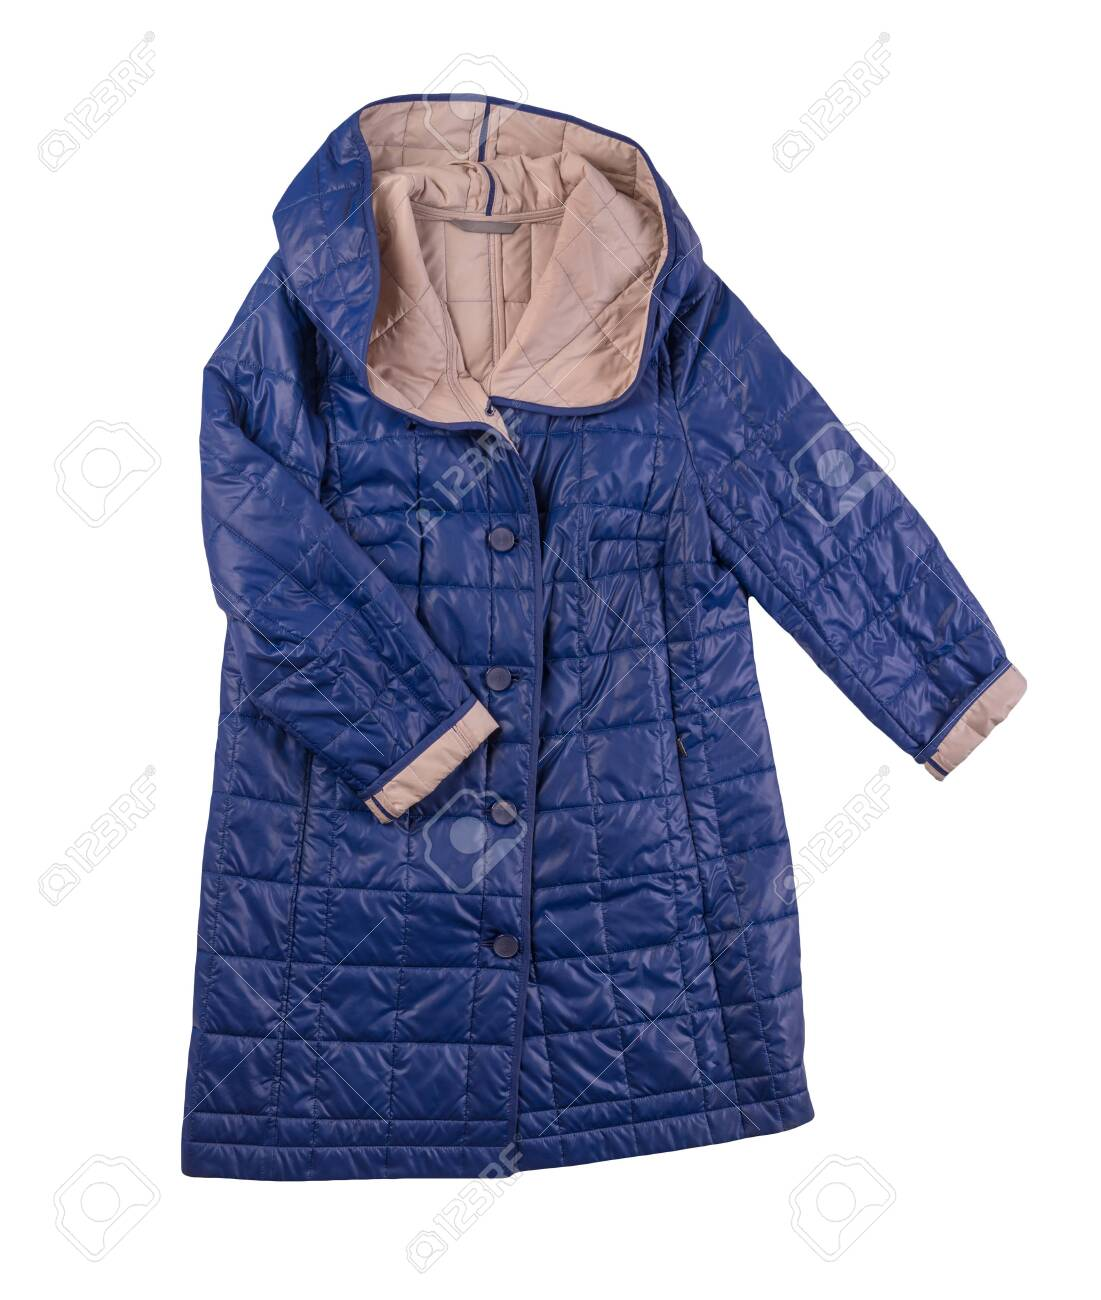 female blue beige coat with a hood Isolated on a white background. autumn women's coat not wet from the rain top view - 142170572